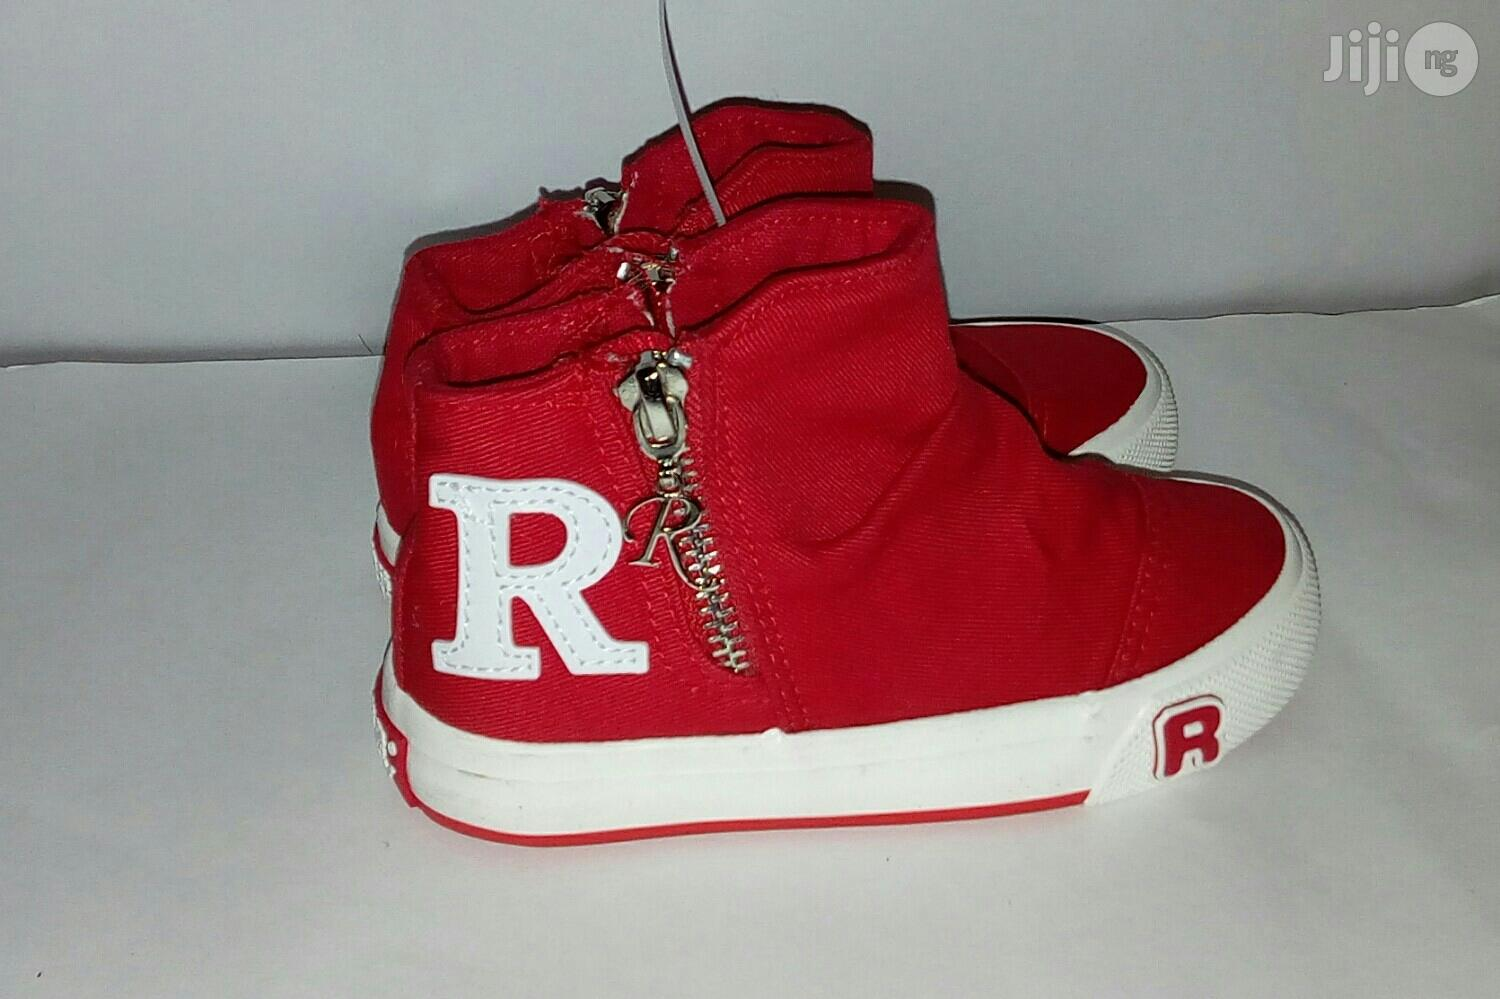 Red High Top Sneakers for Girls